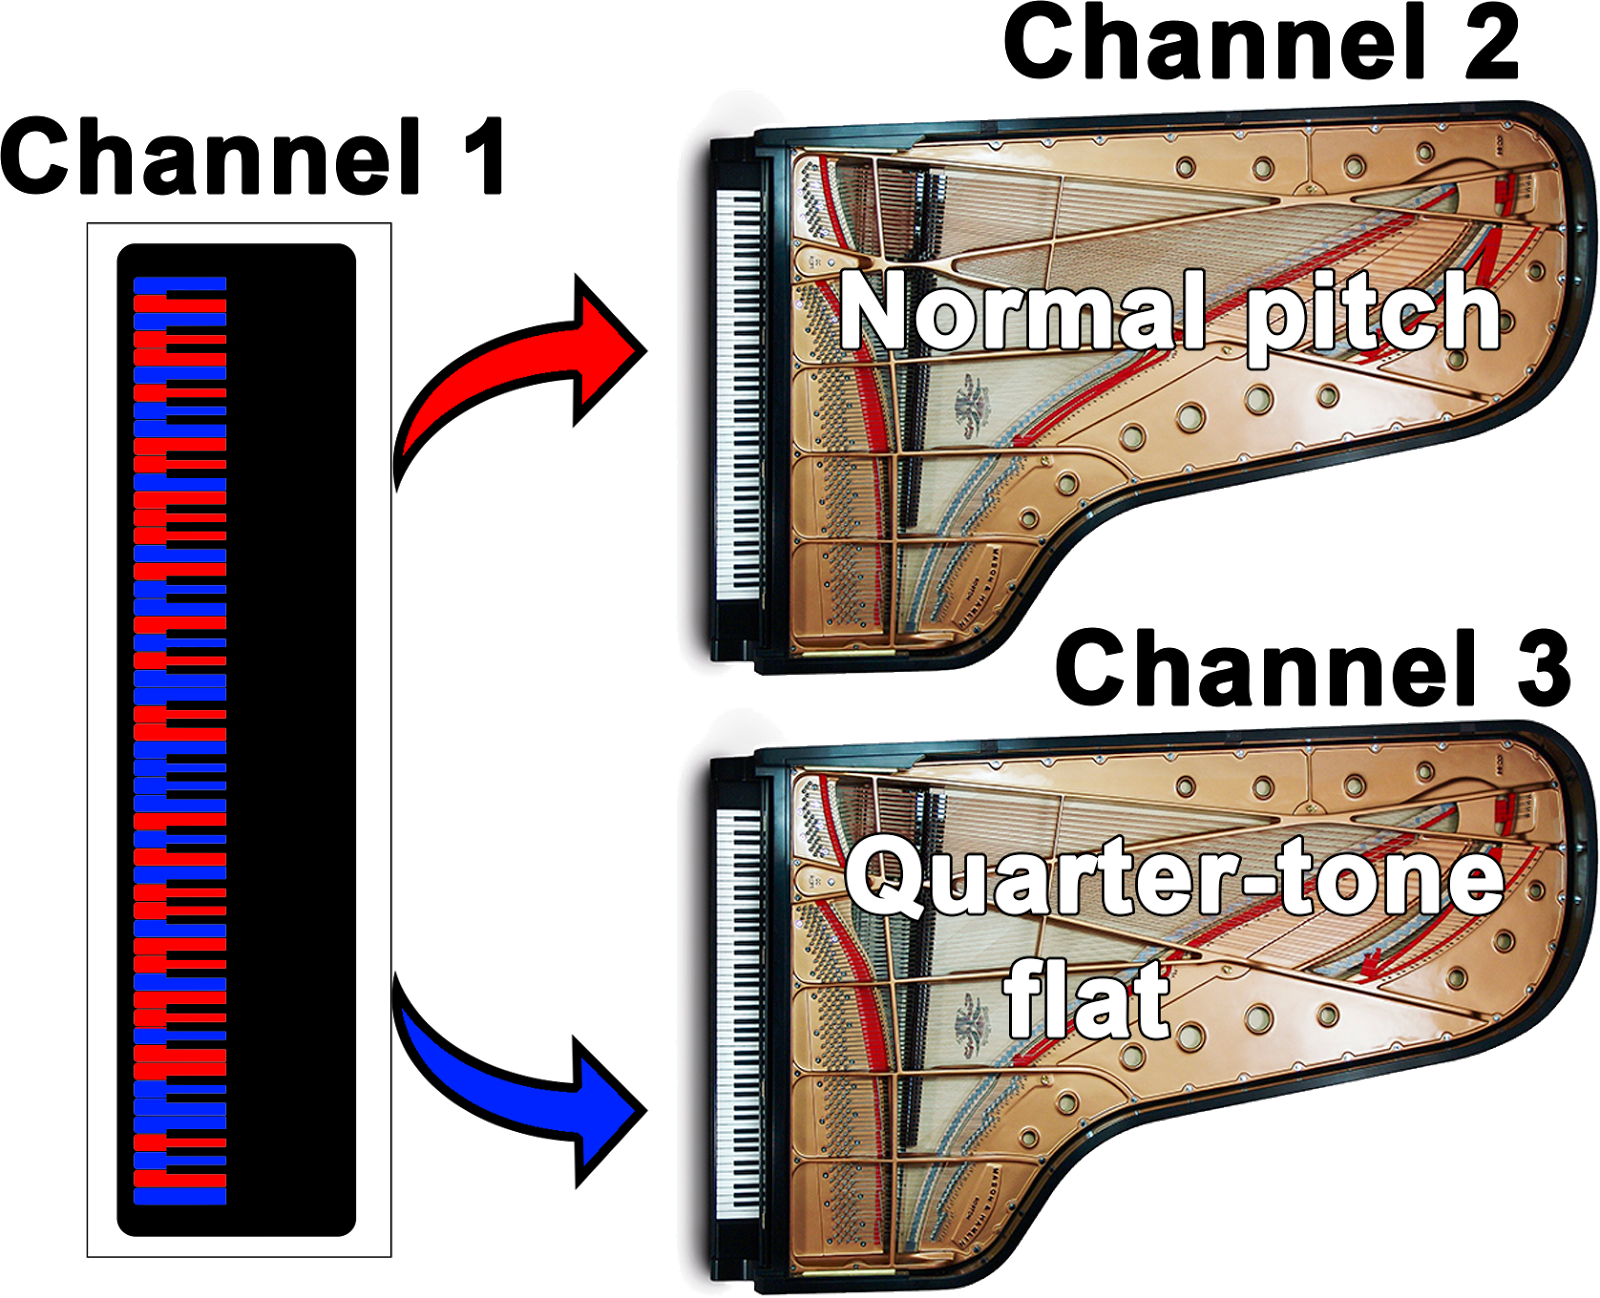 Cincinnati Note Quartertones For Keyboard Solo Piano Diagram With Notes Of Course My Can Control Only Half The On Virtual Pianos At Any One Time Ill Map Certain Keys To Pitches Section